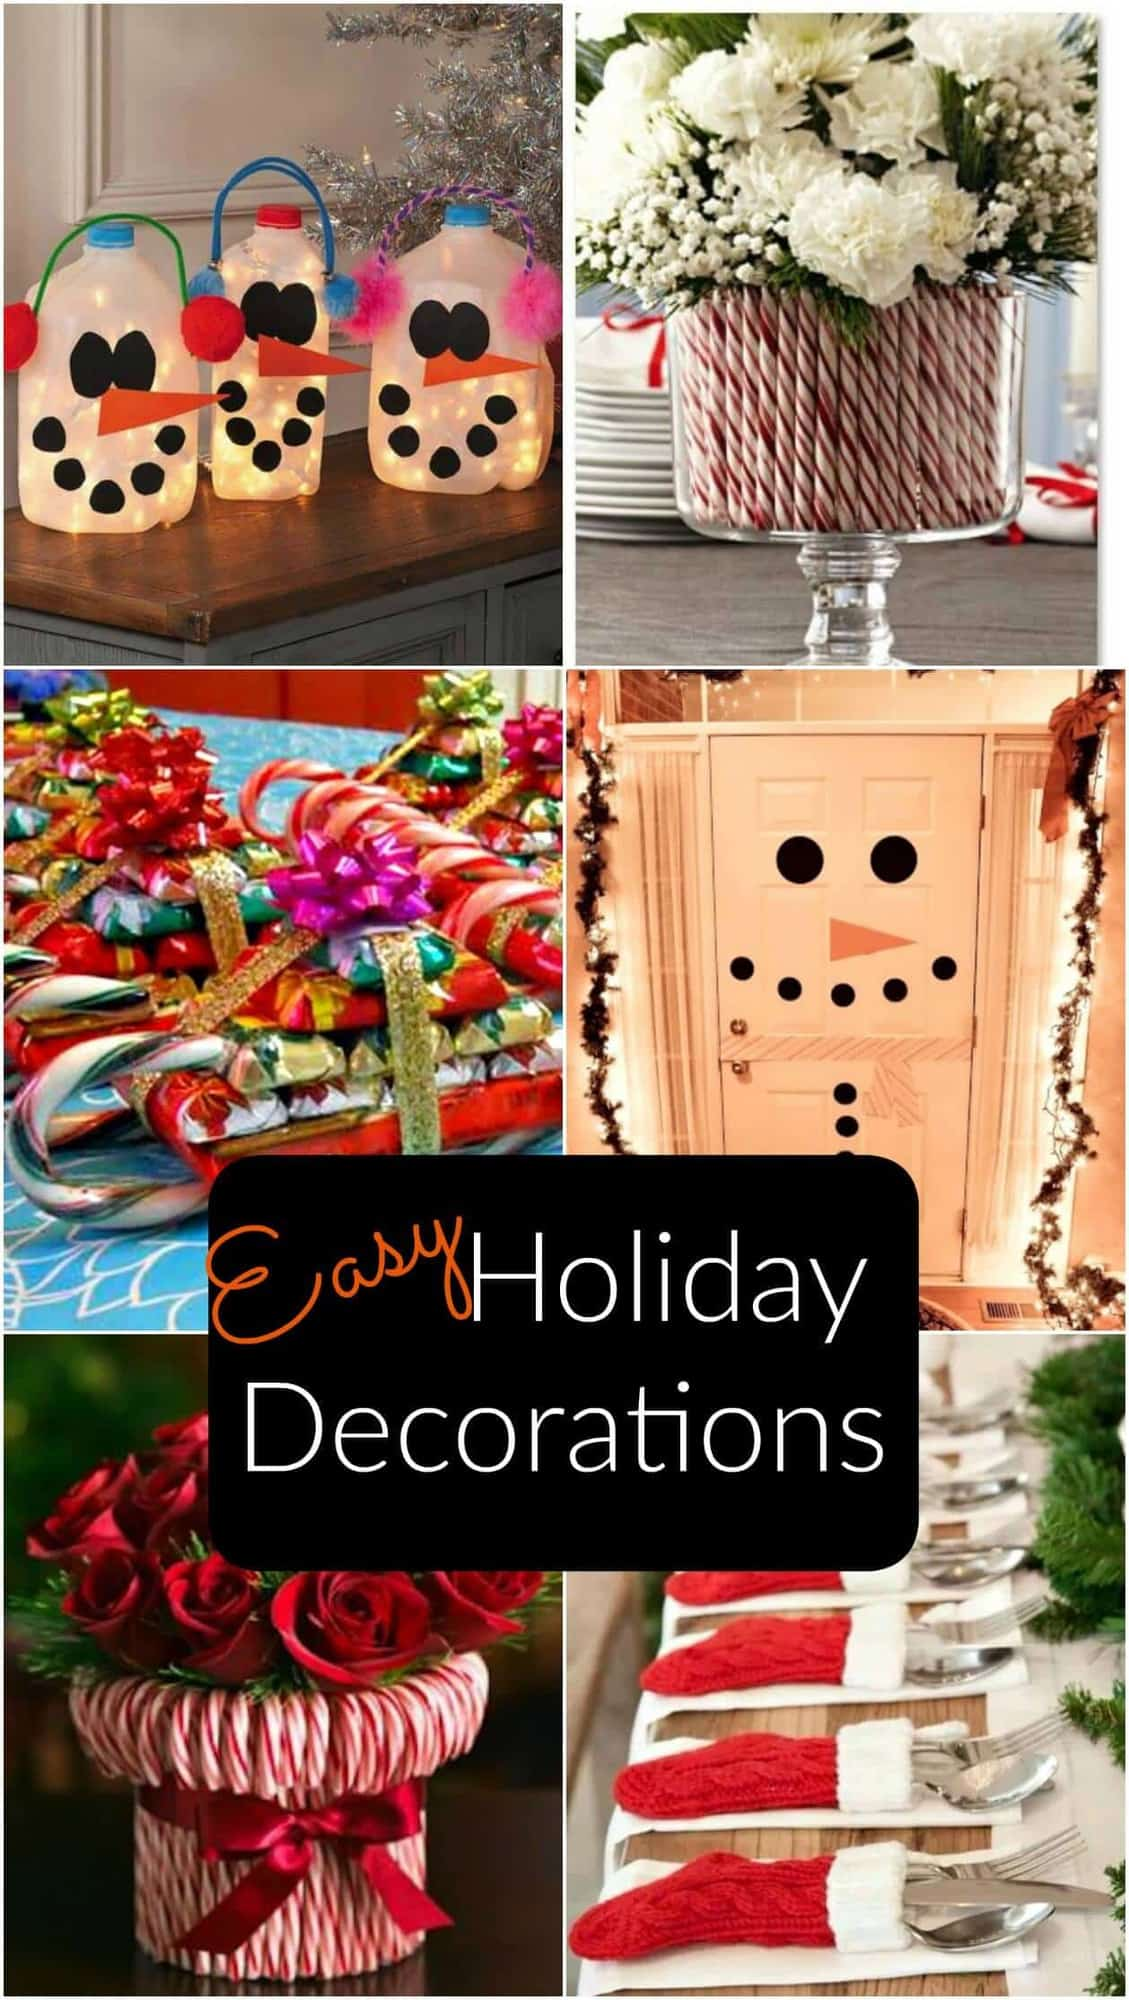 Cute & Easy Holiday Decorations - Page 2 of 2 - Princess ...